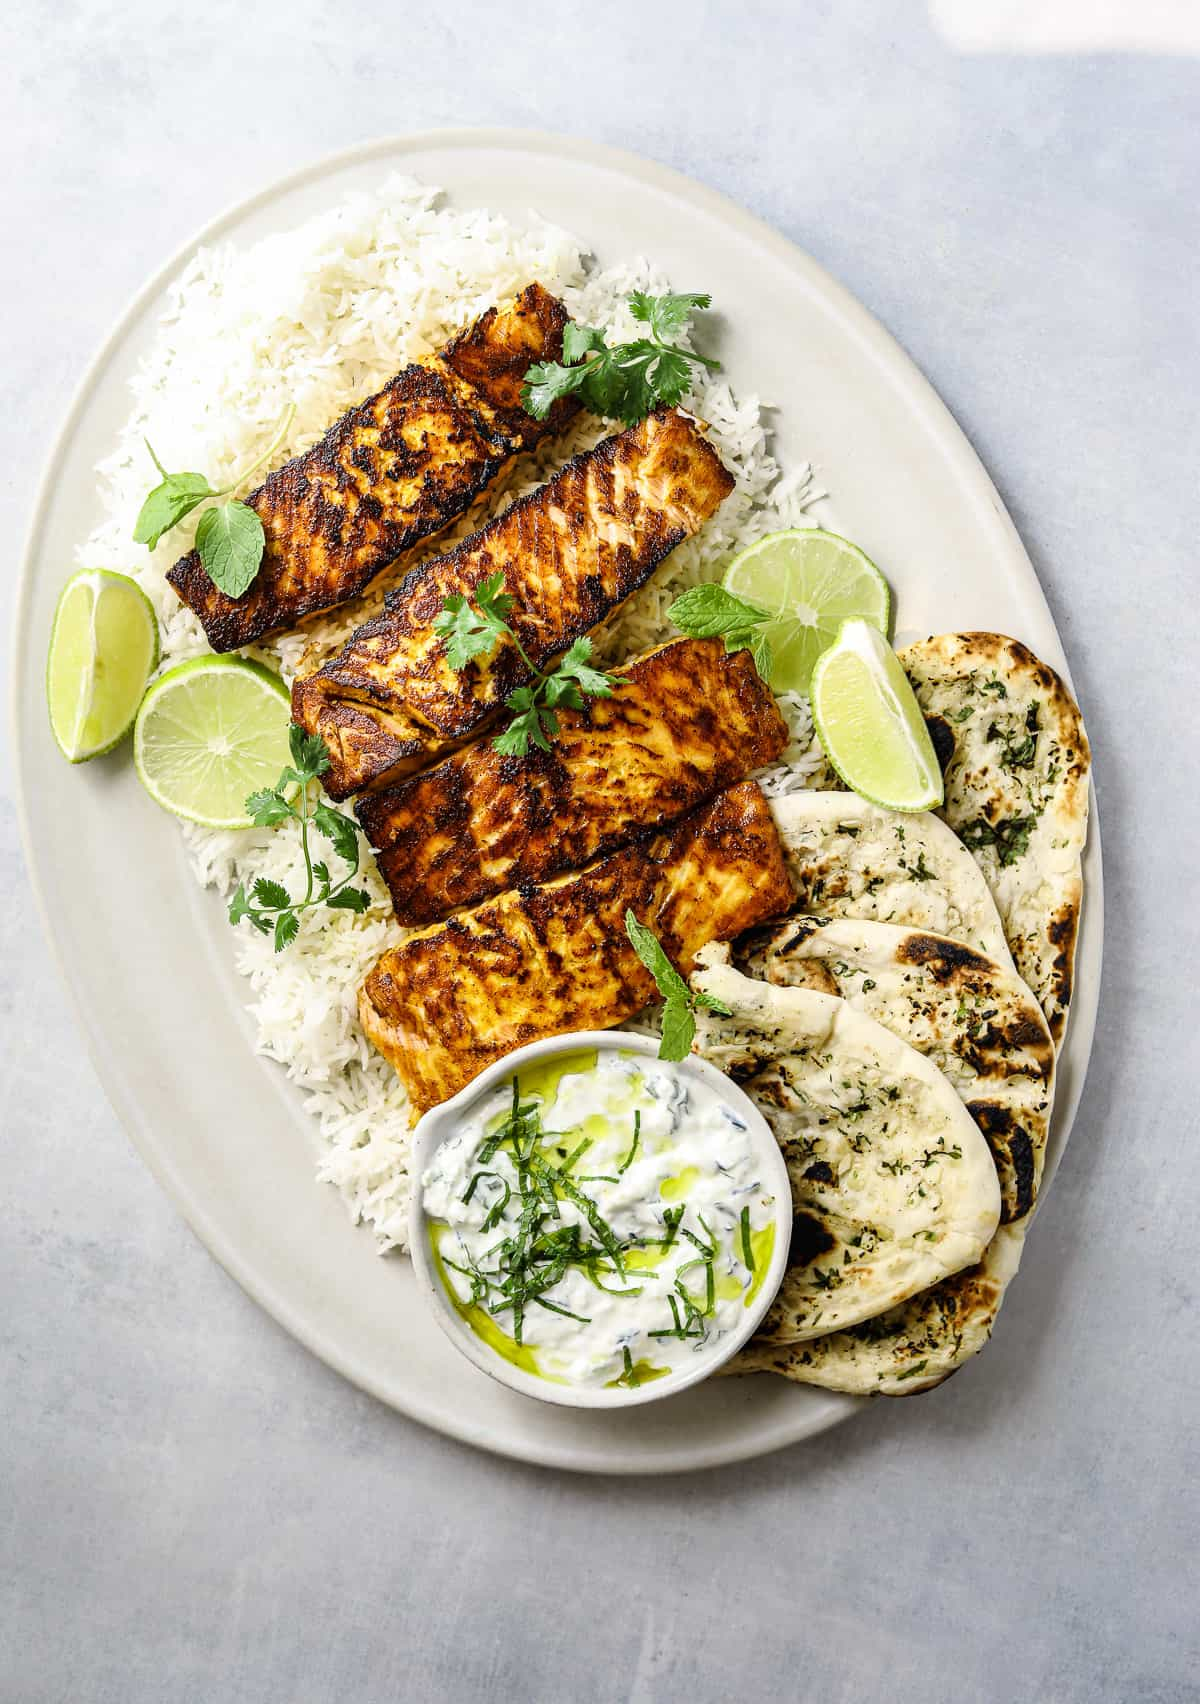 a large oval platter of tandoori salmon filets on top of rice with naan bread and raita sauce